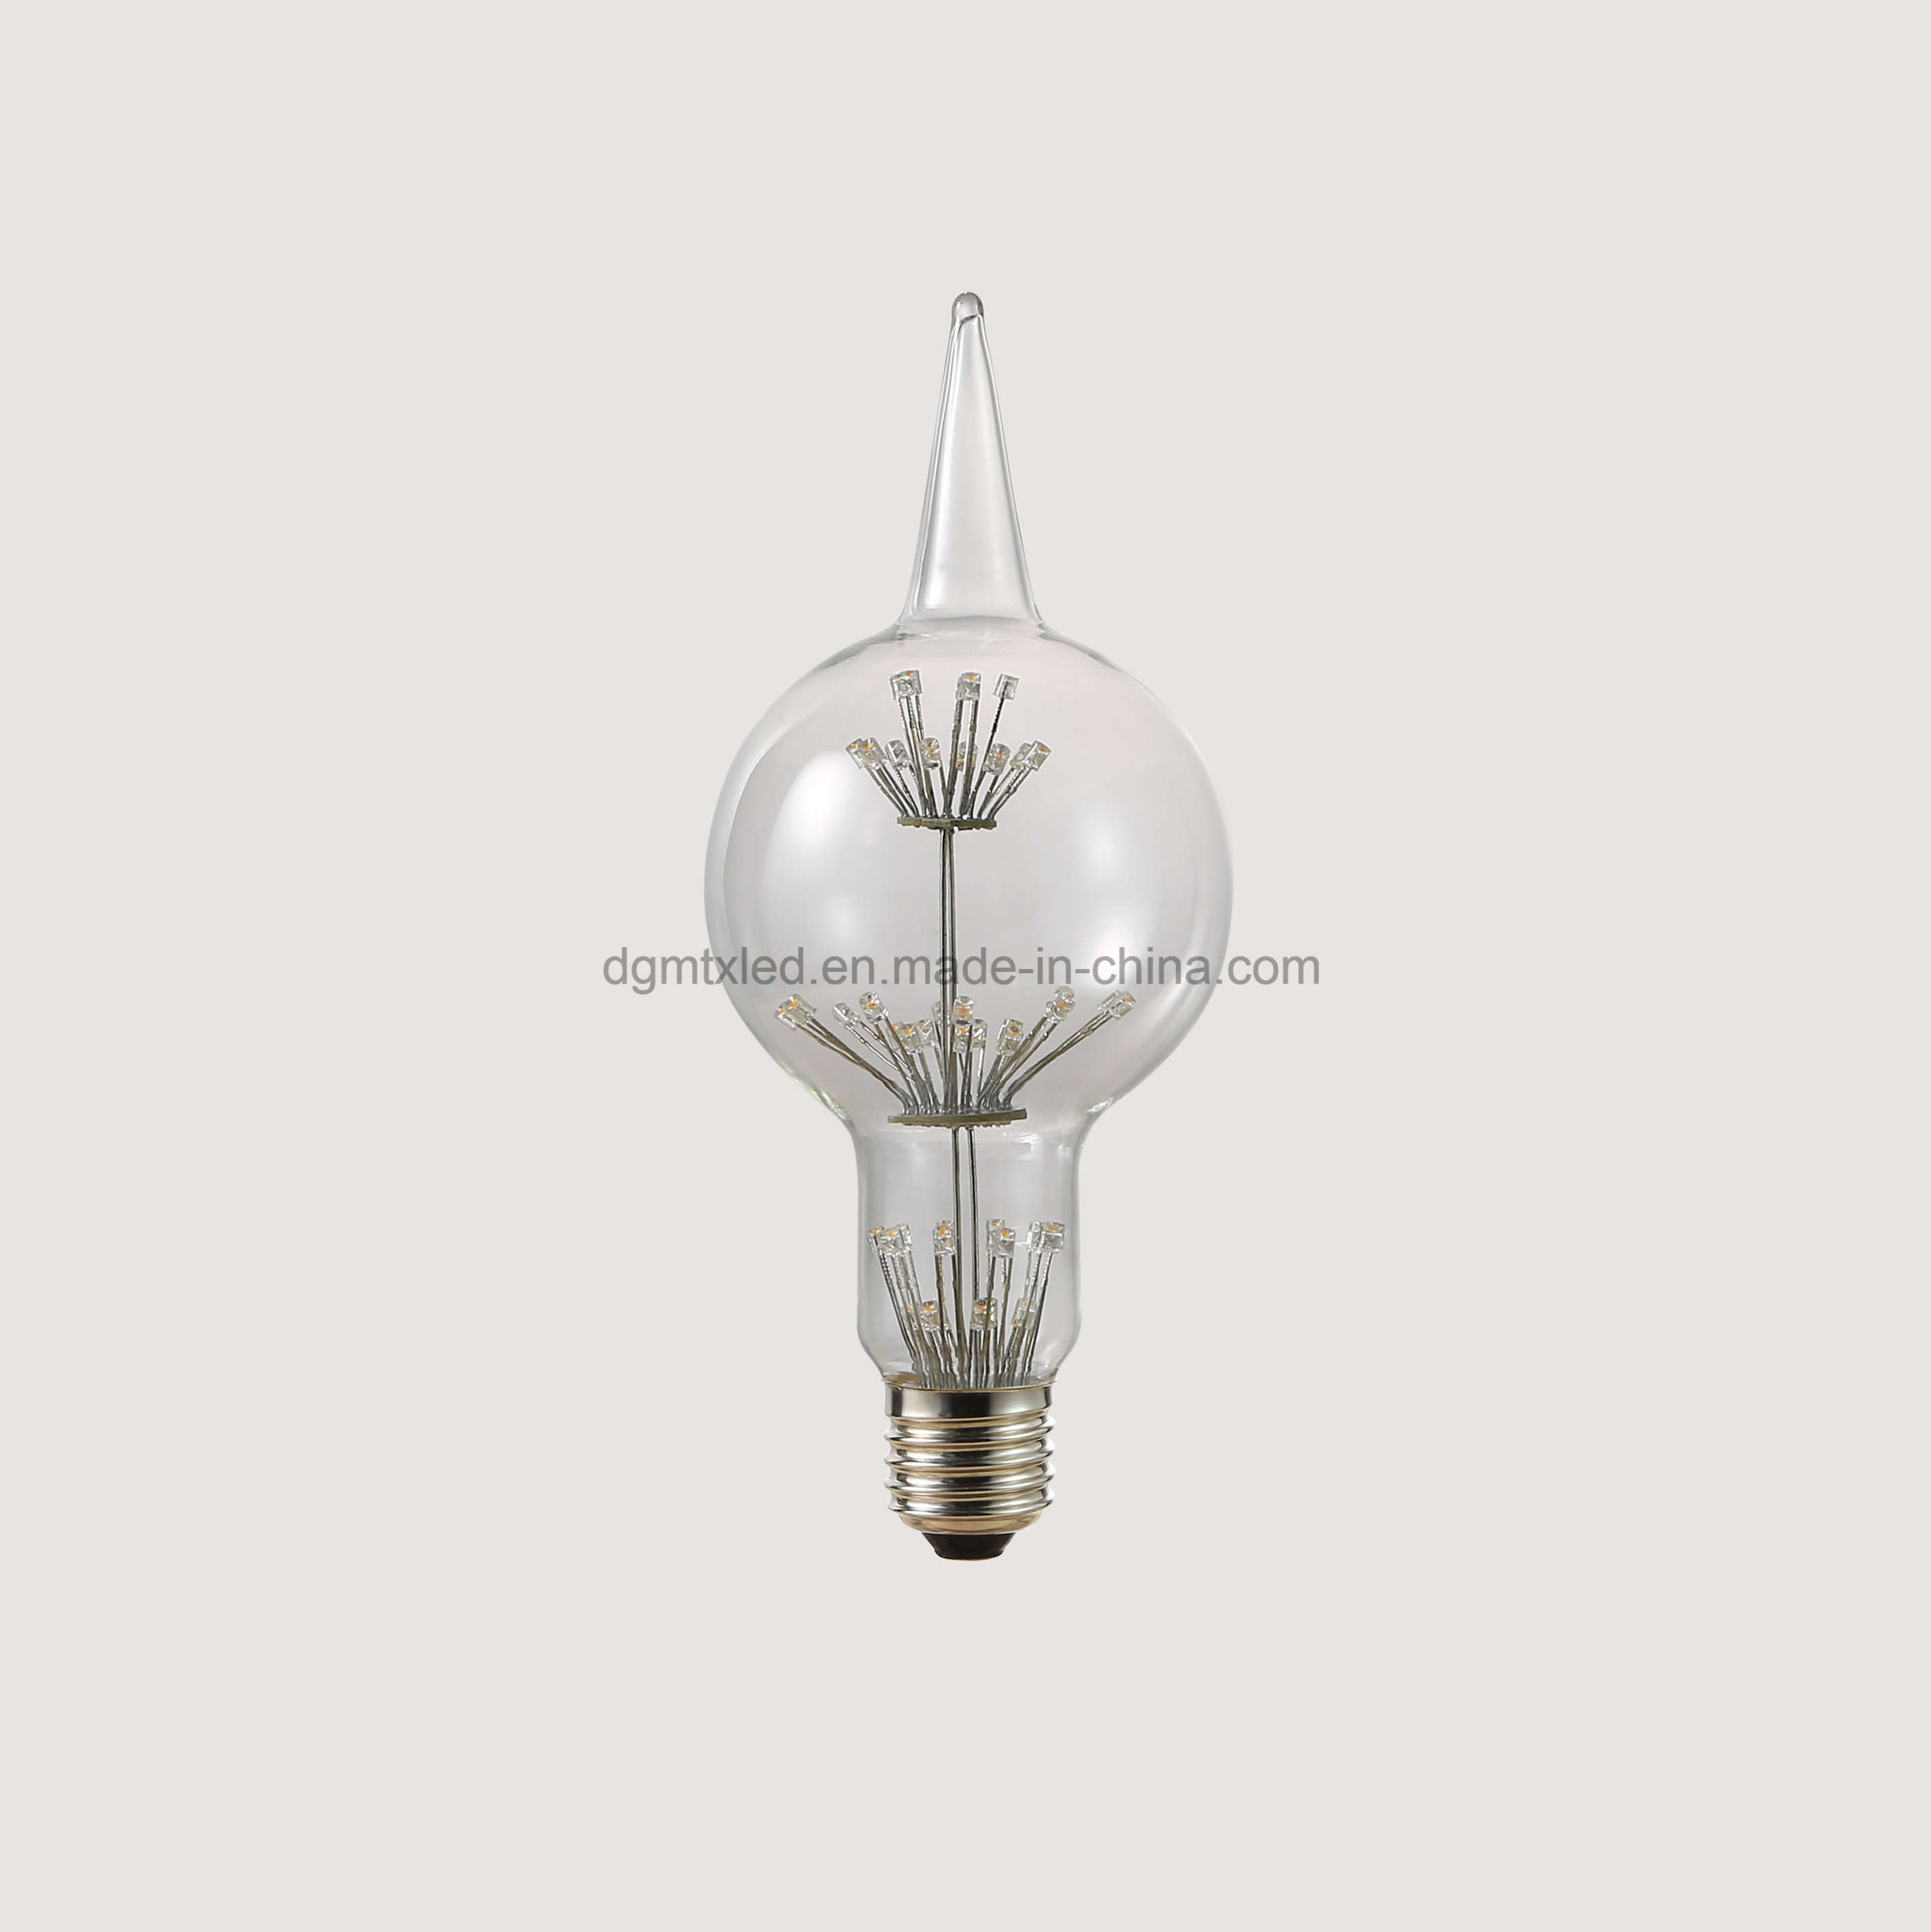 LED diodeRGB LED bulb e27 2700K-6500K decoration light bulb price